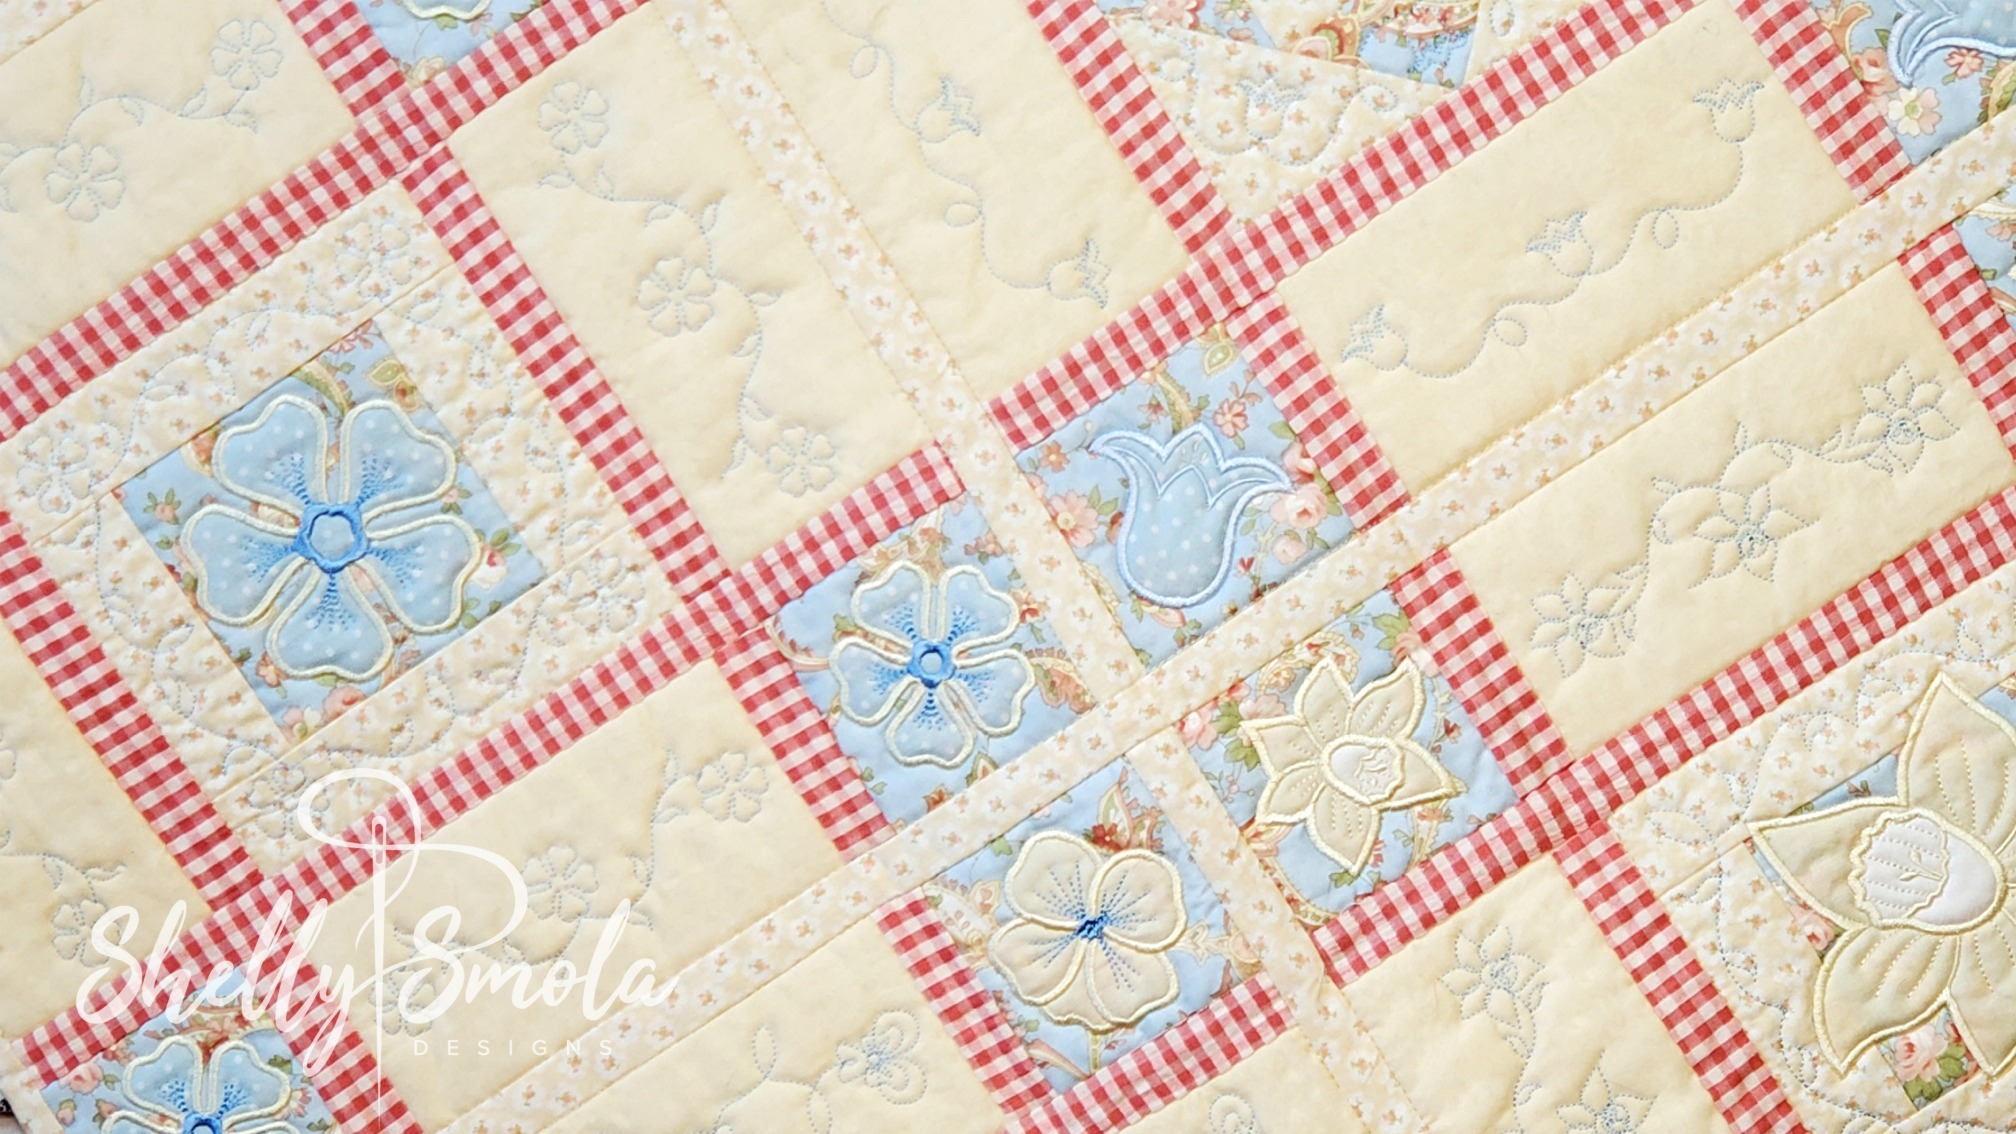 Spring Quilt by Shelly Smola